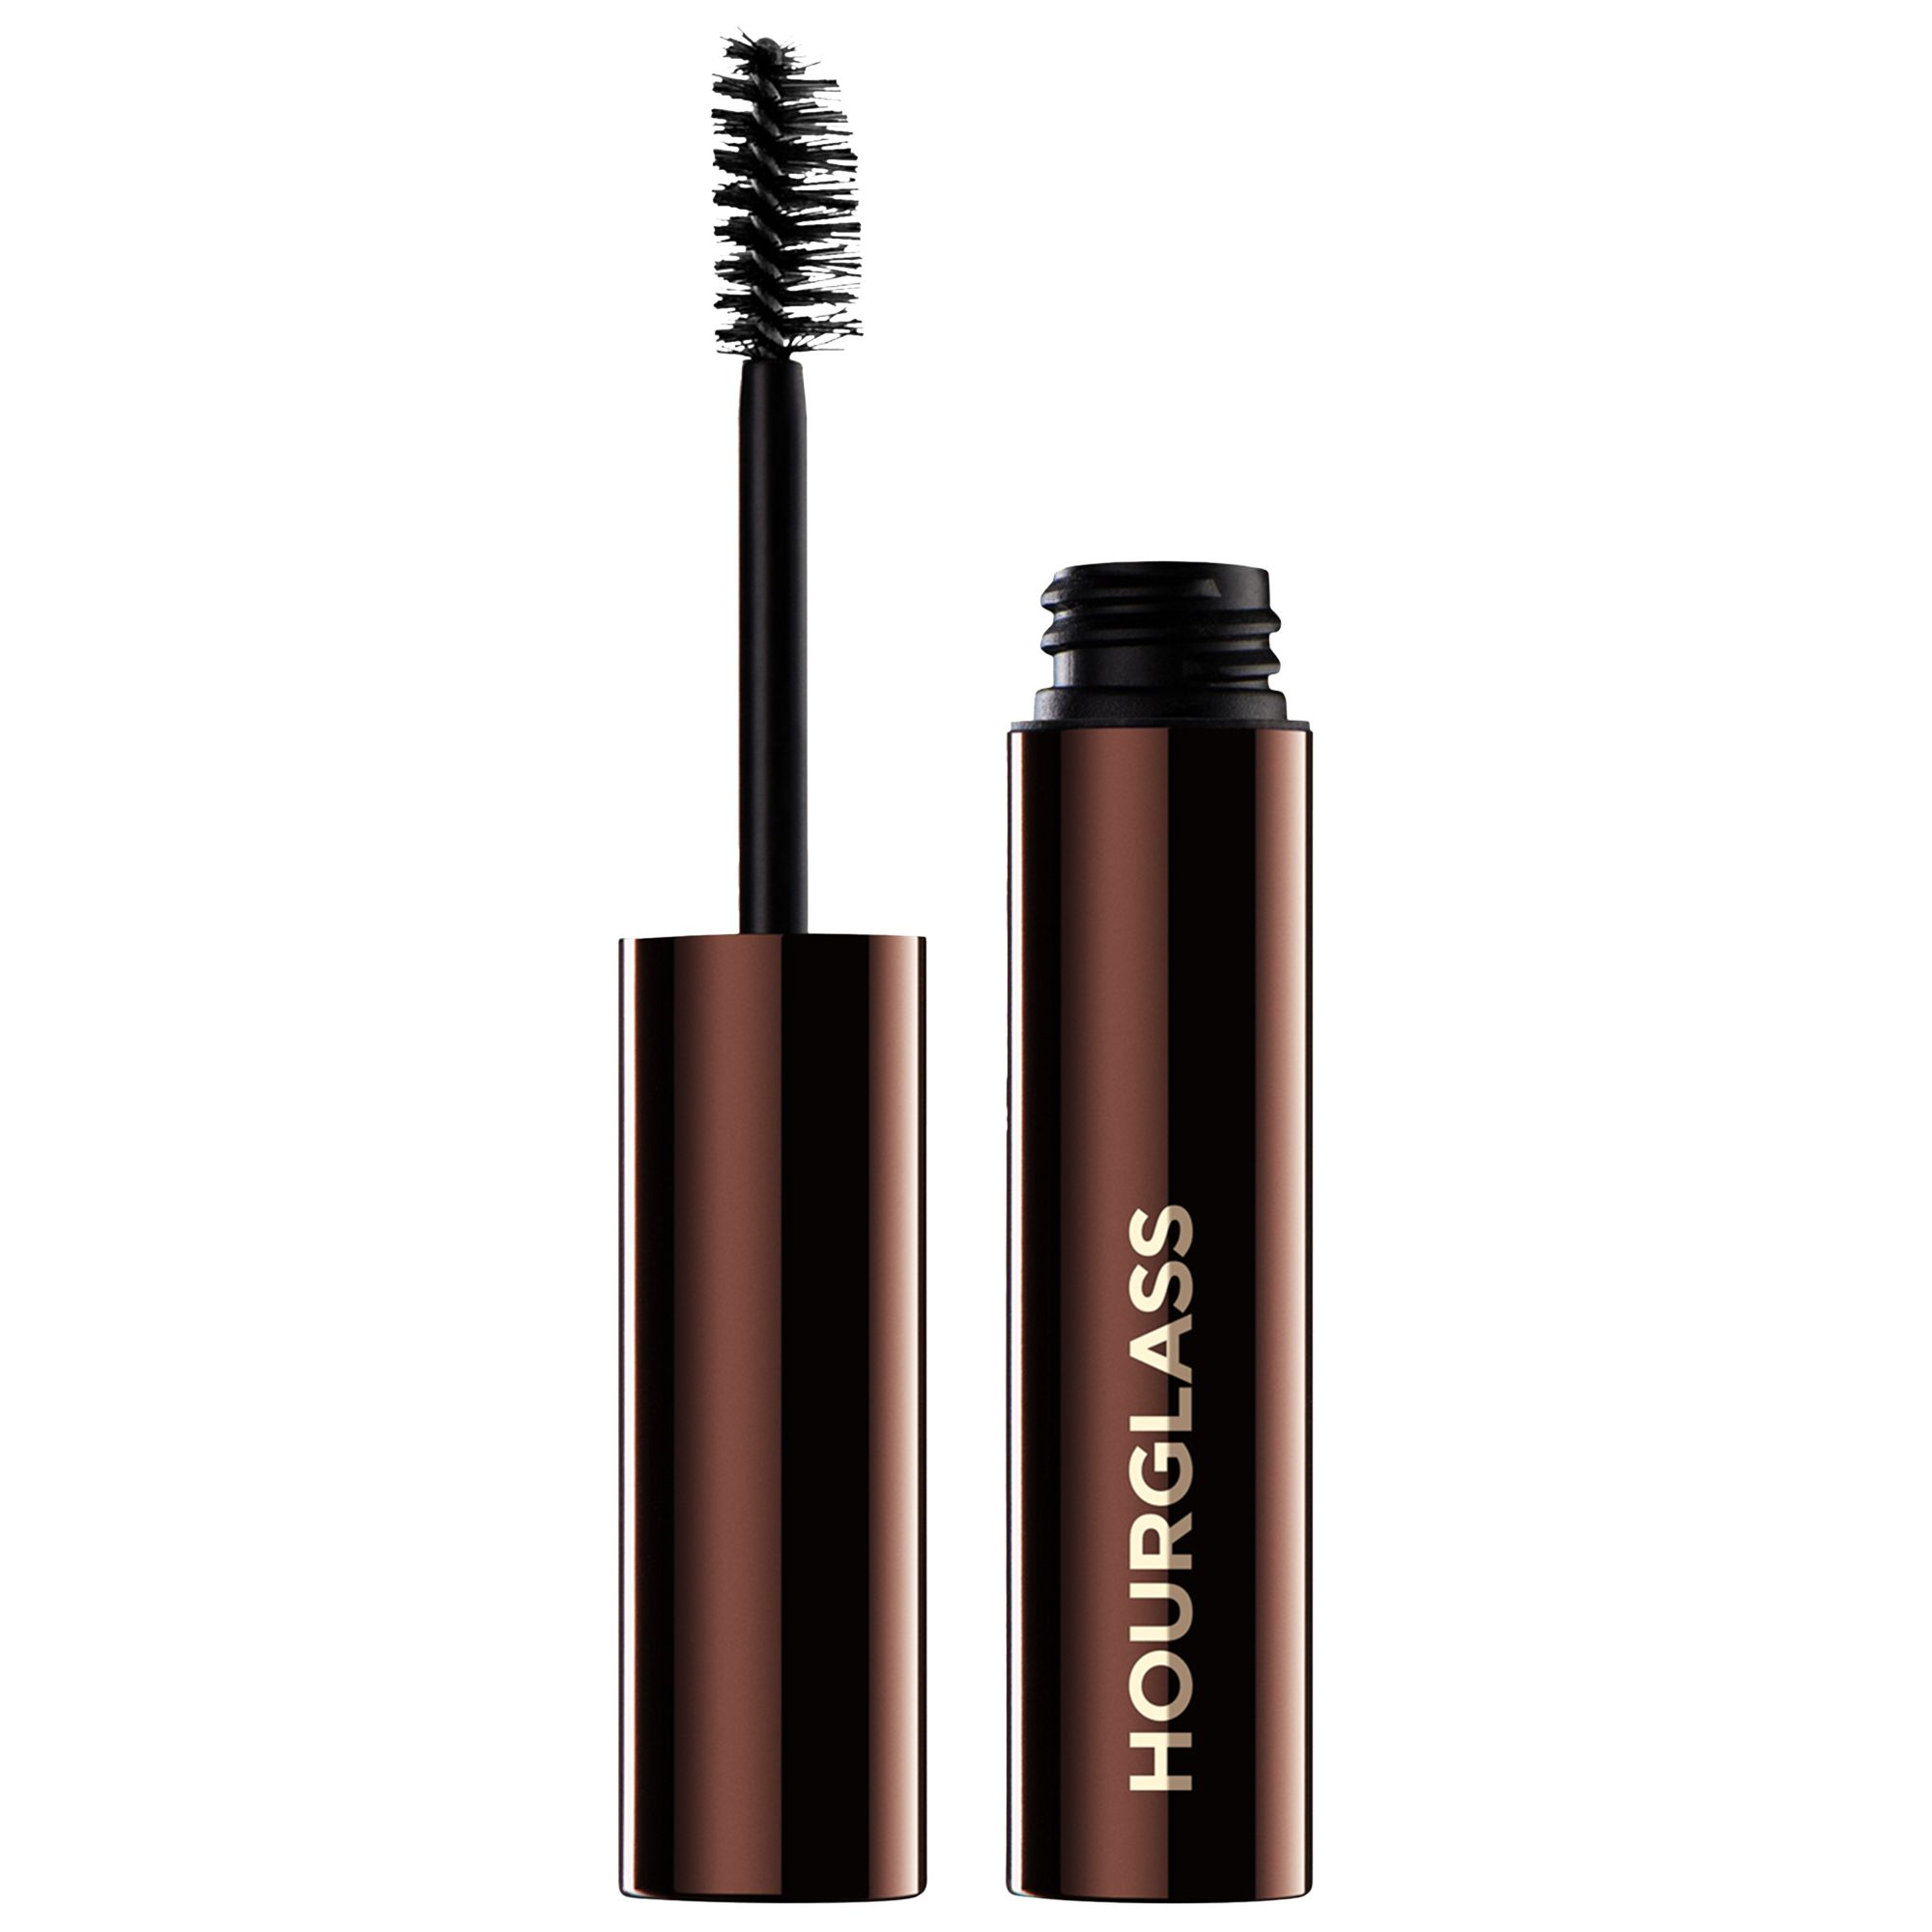 Hourglass Hourglass Arch Brow Shaping Gel, Clear